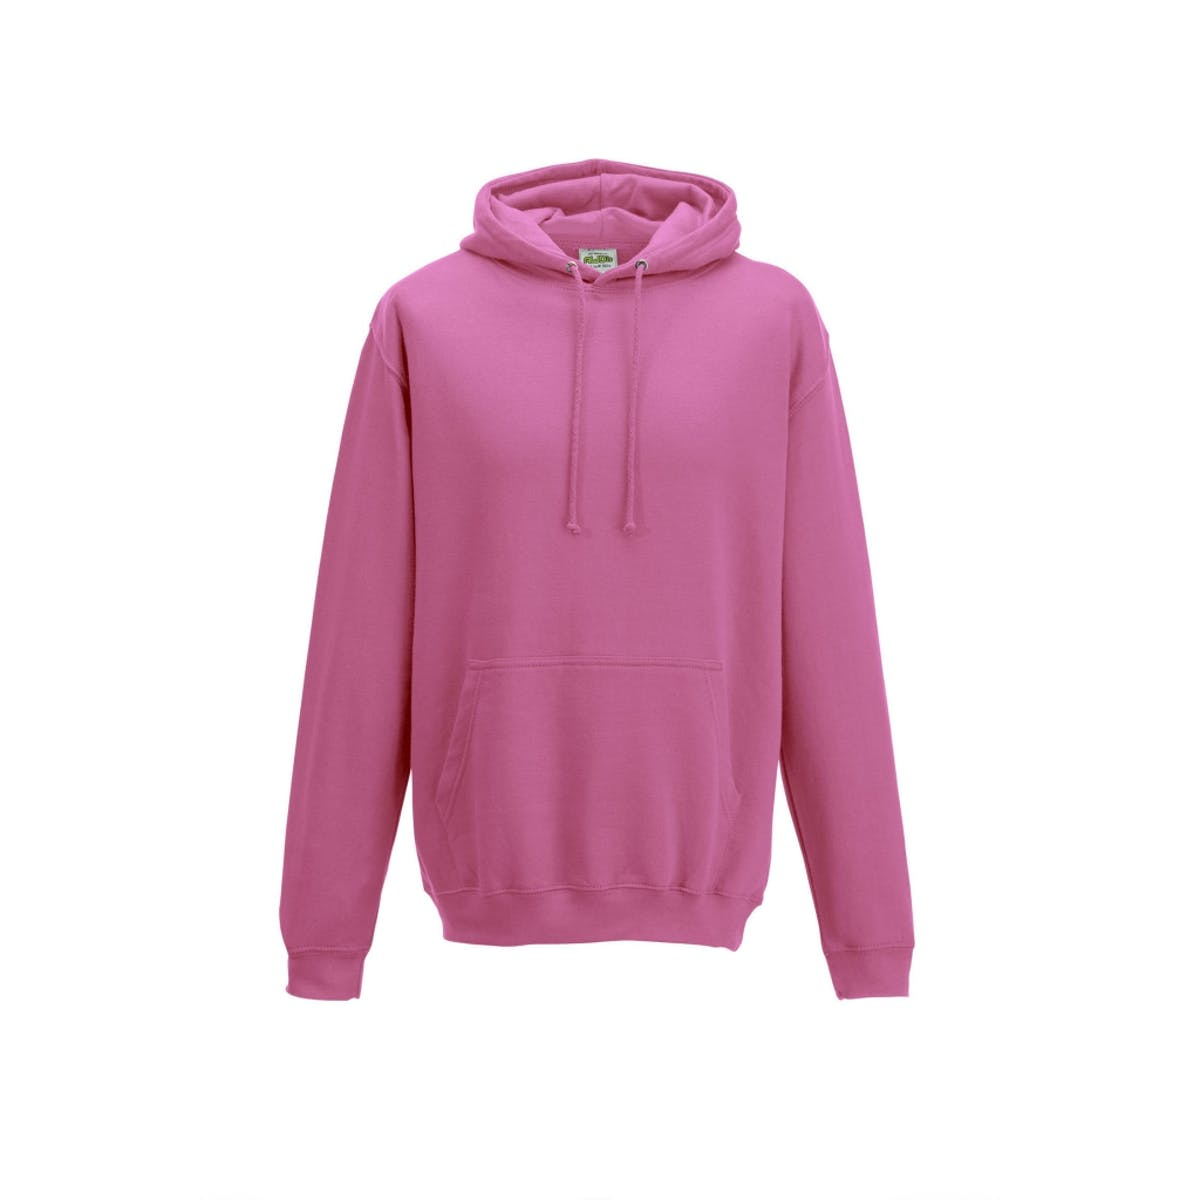 candyfloss pink college hoodies